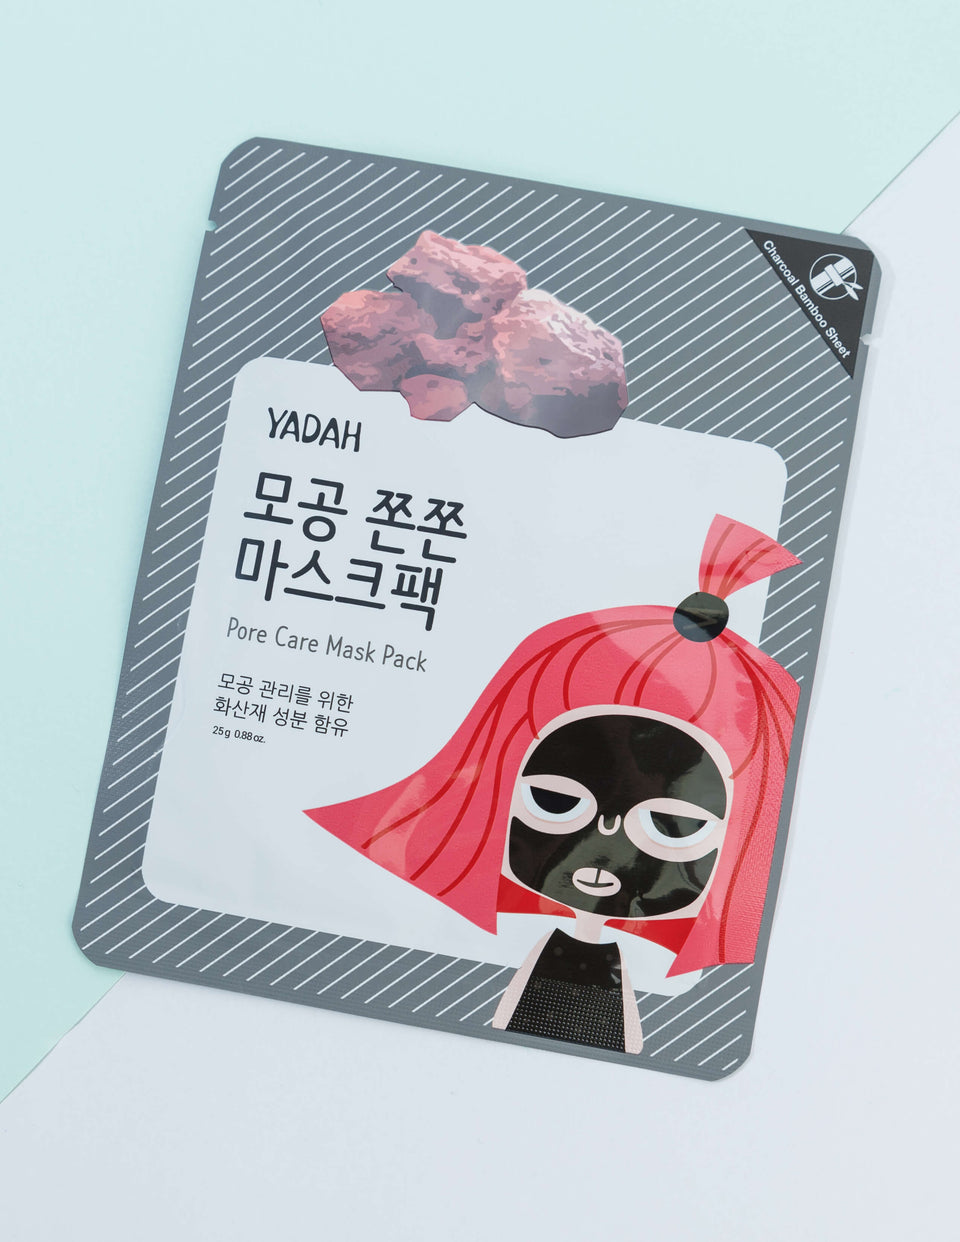 Pore Care Mask Pack 1pc